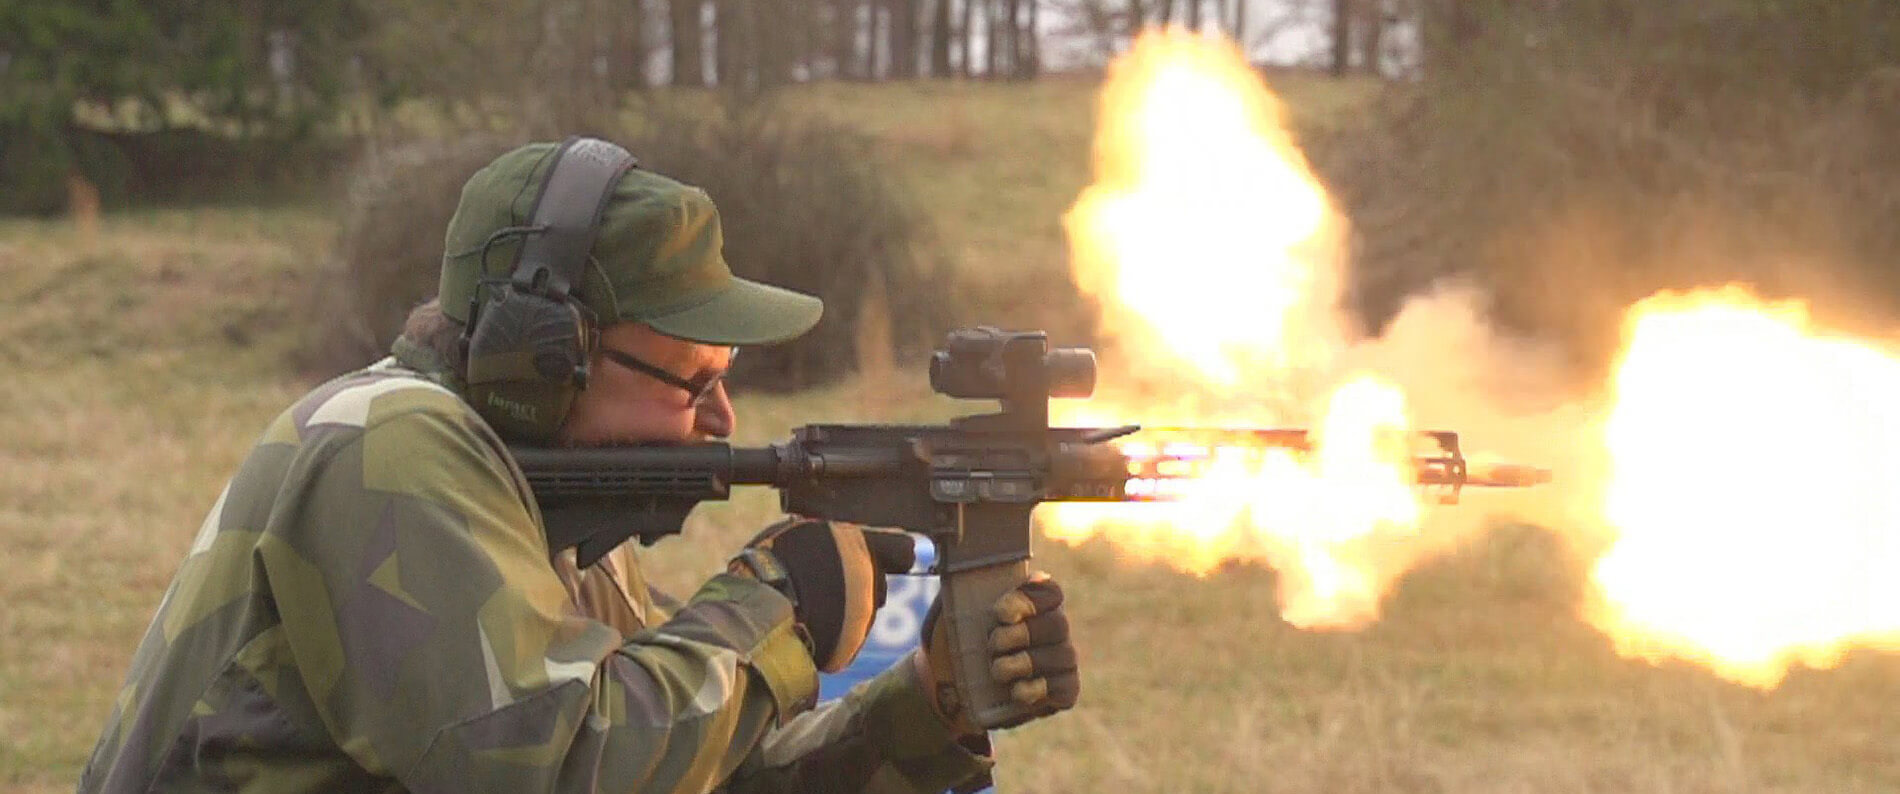 AR-15 barrel heating up